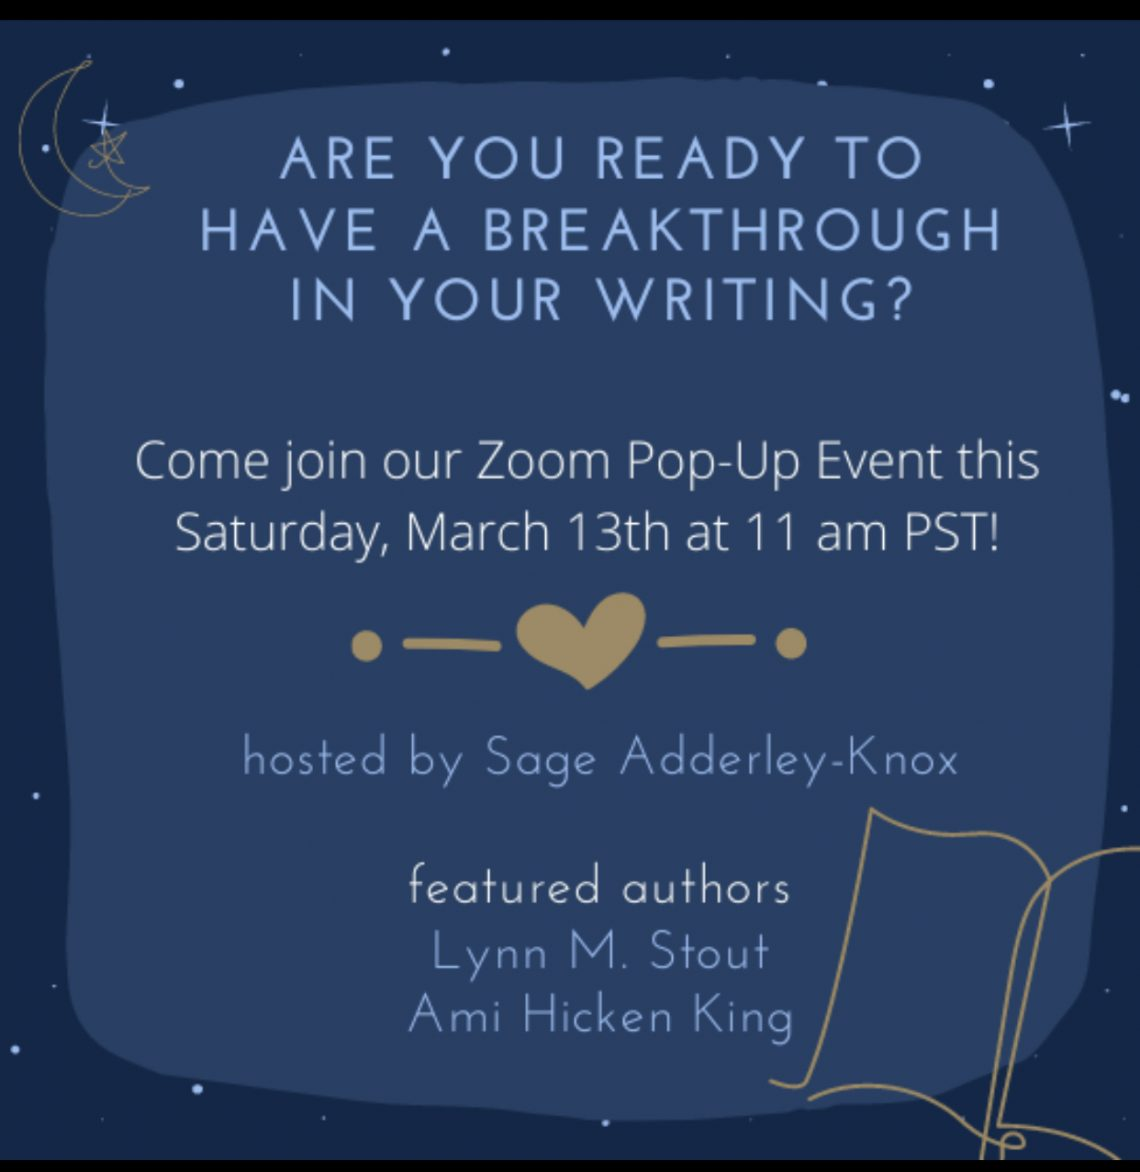 invite for a pop-up lead by Sage Adderly-Knox and invited guests Lynn M. Stout and Ami Hicken King. Dark blue background with light blue text and white text. Saturday, March 13, 2021 at 11:00 am PST. Dot, Line, Heart, Line, Dot gold logo and an outline of a piece of paper in gold.